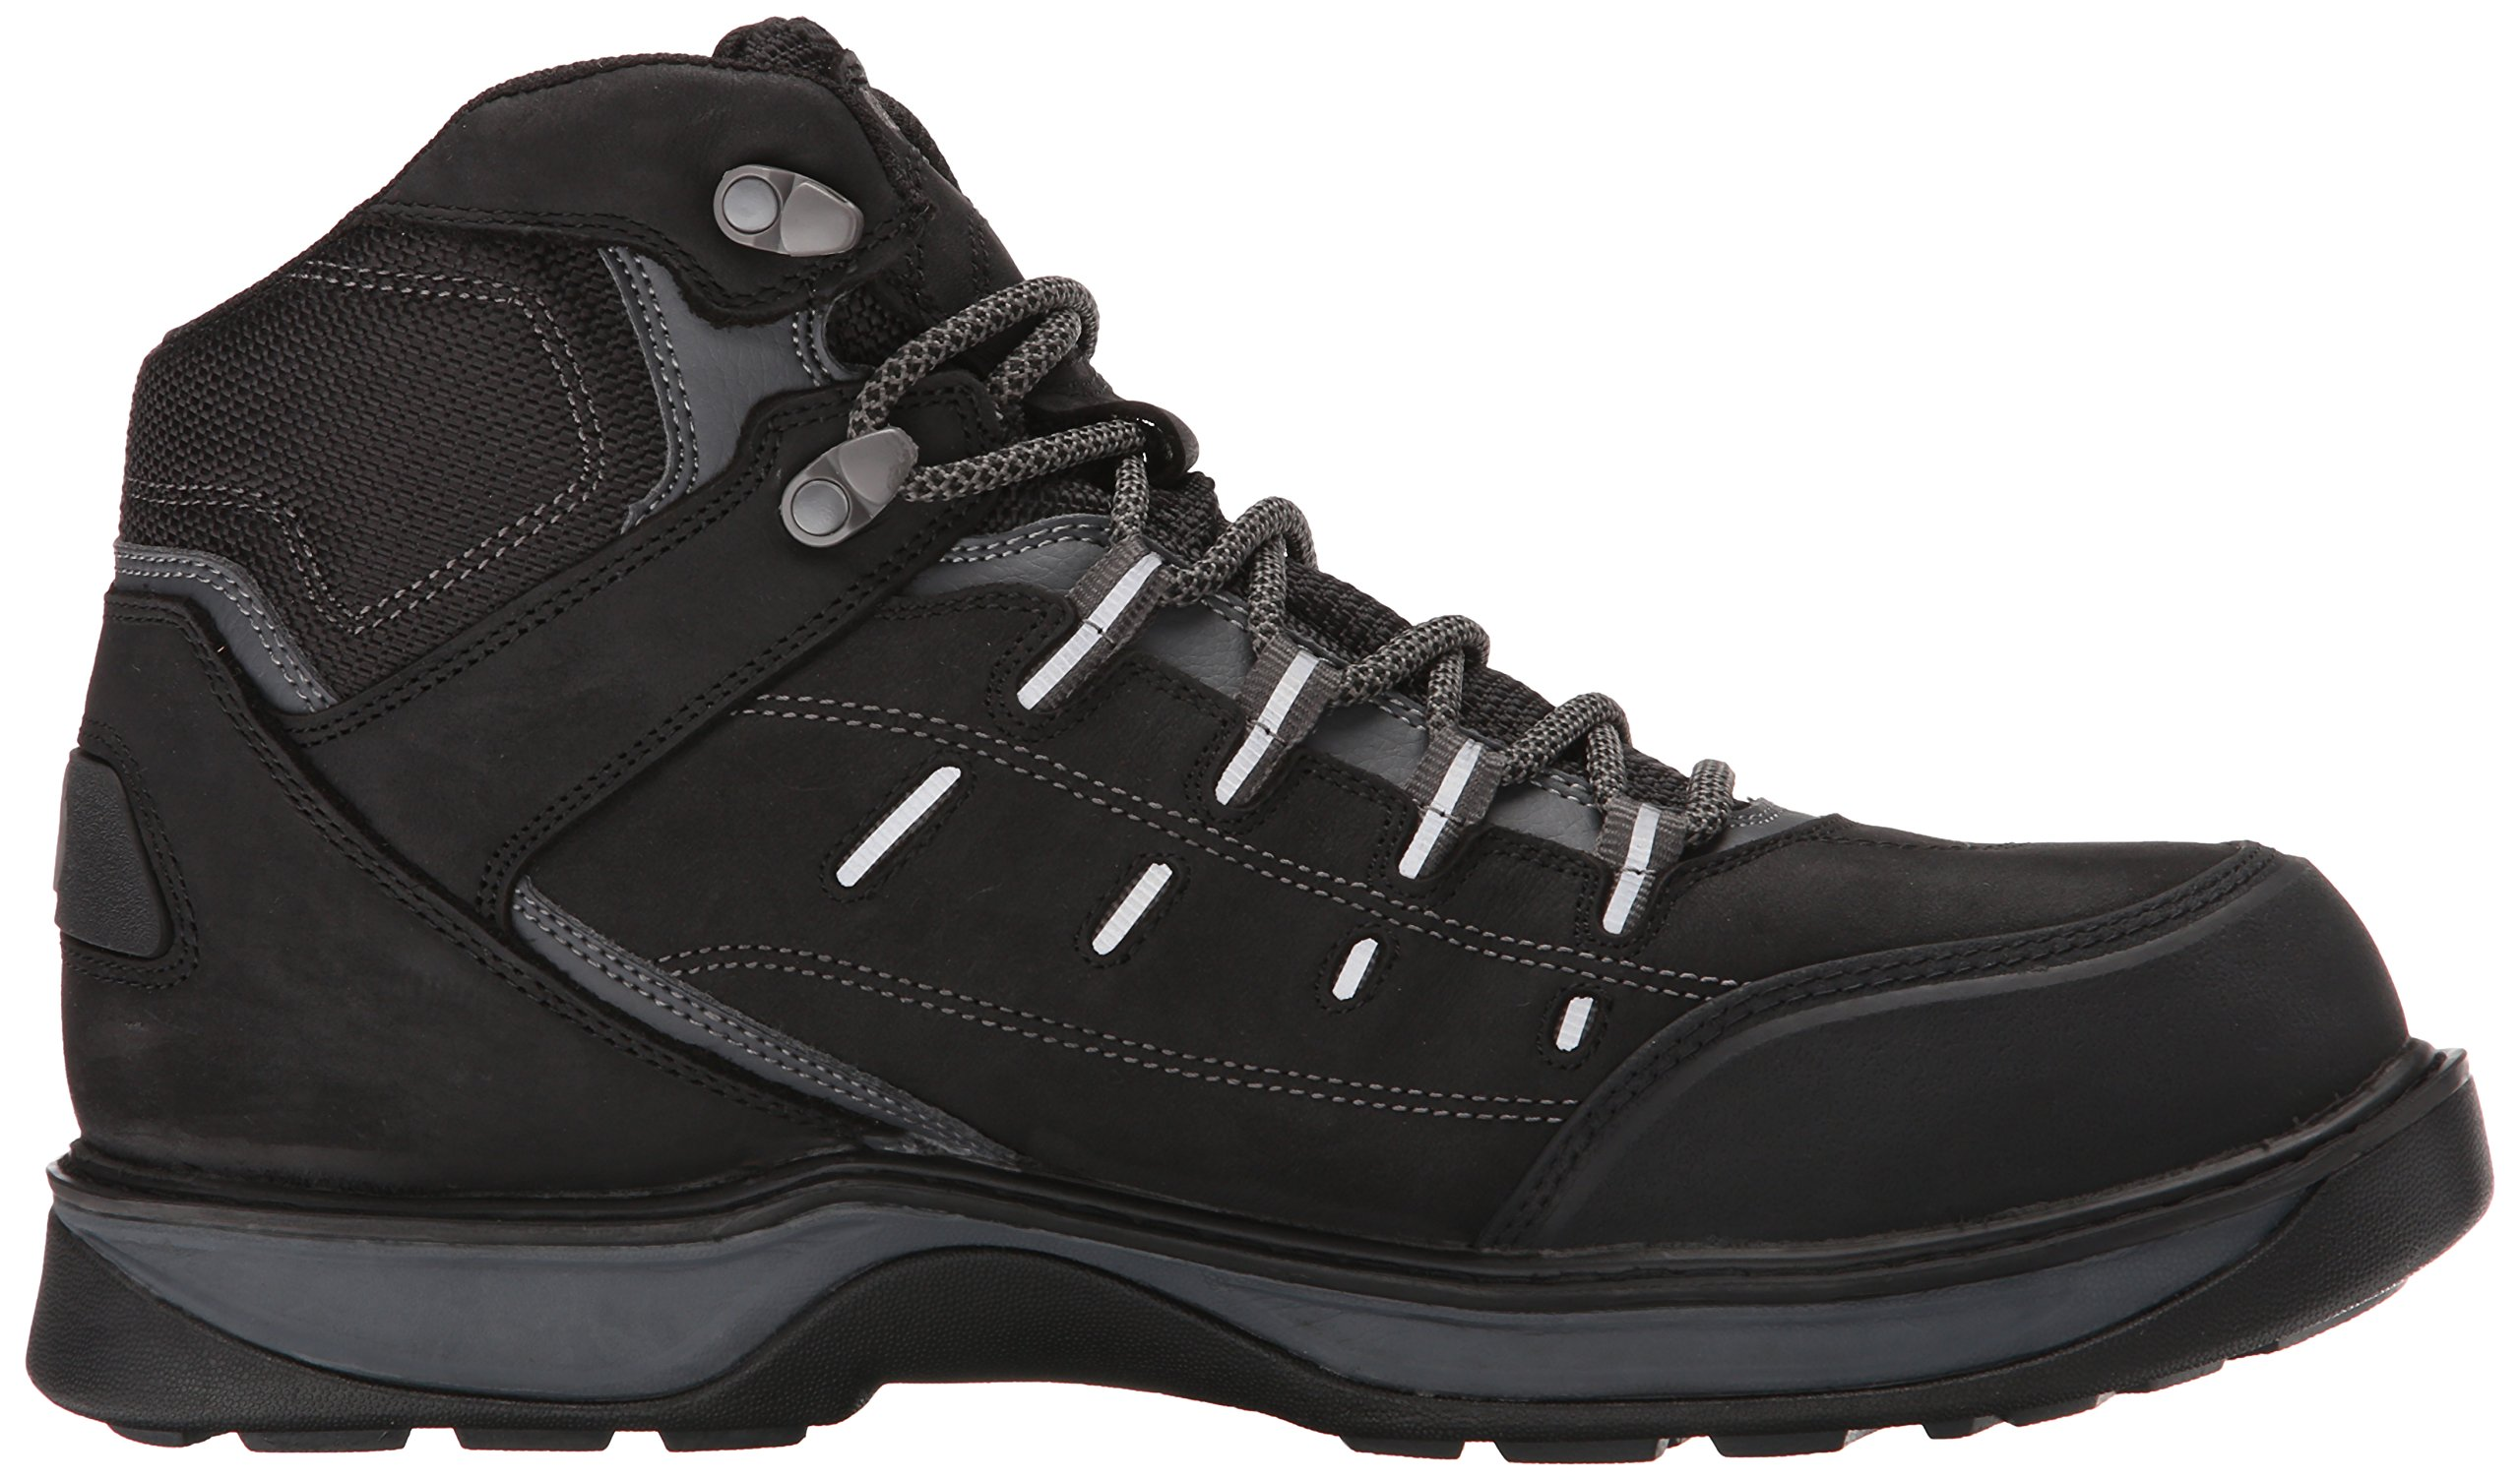 Wolverine Men's Edge LX Nano Toe Work Boot, Black/Grey, 11.5 M US by Wolverine (Image #7)